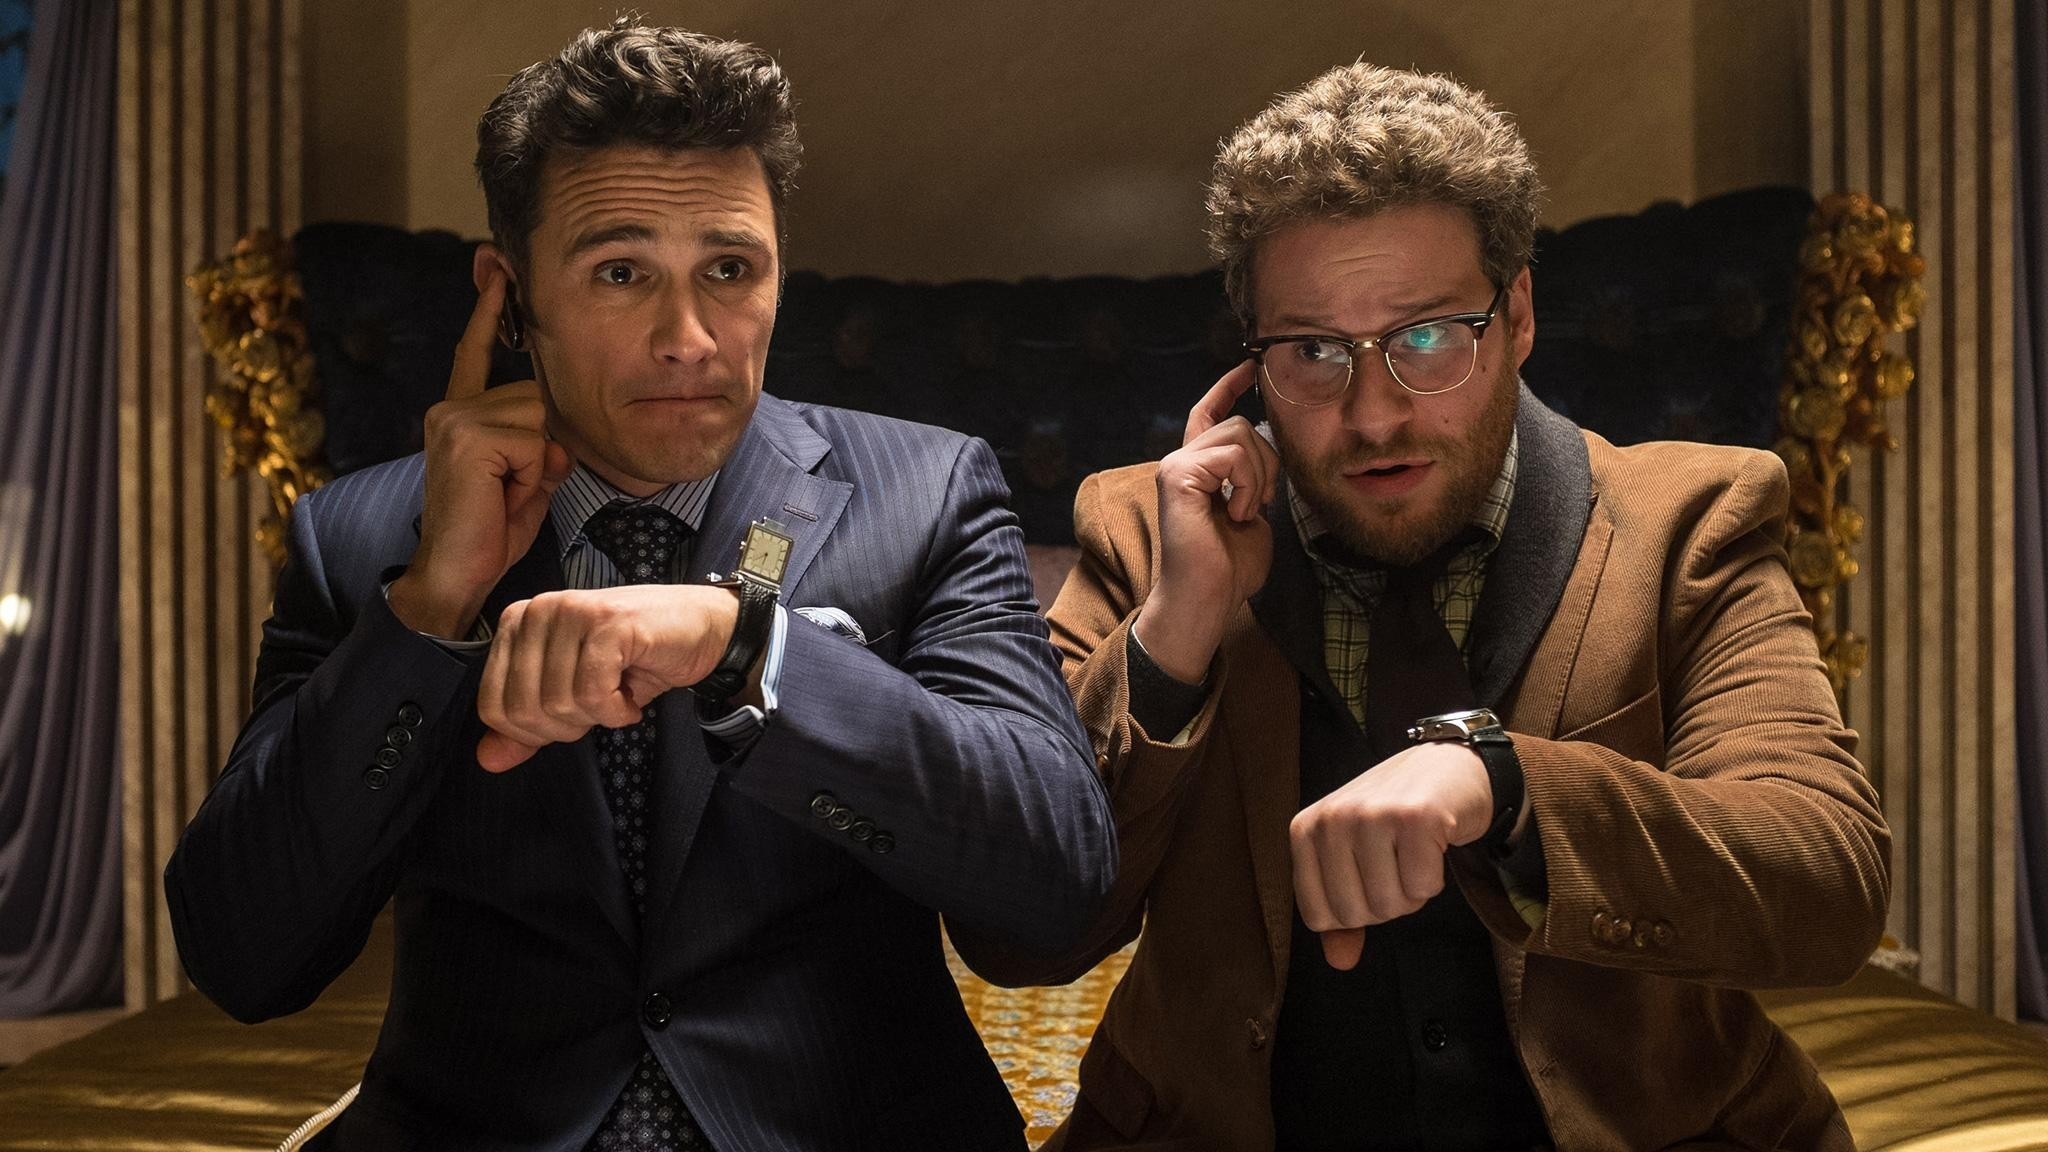 Seth Rogan Christmas.East Bay Indie Theaters Will Screen The Interview On